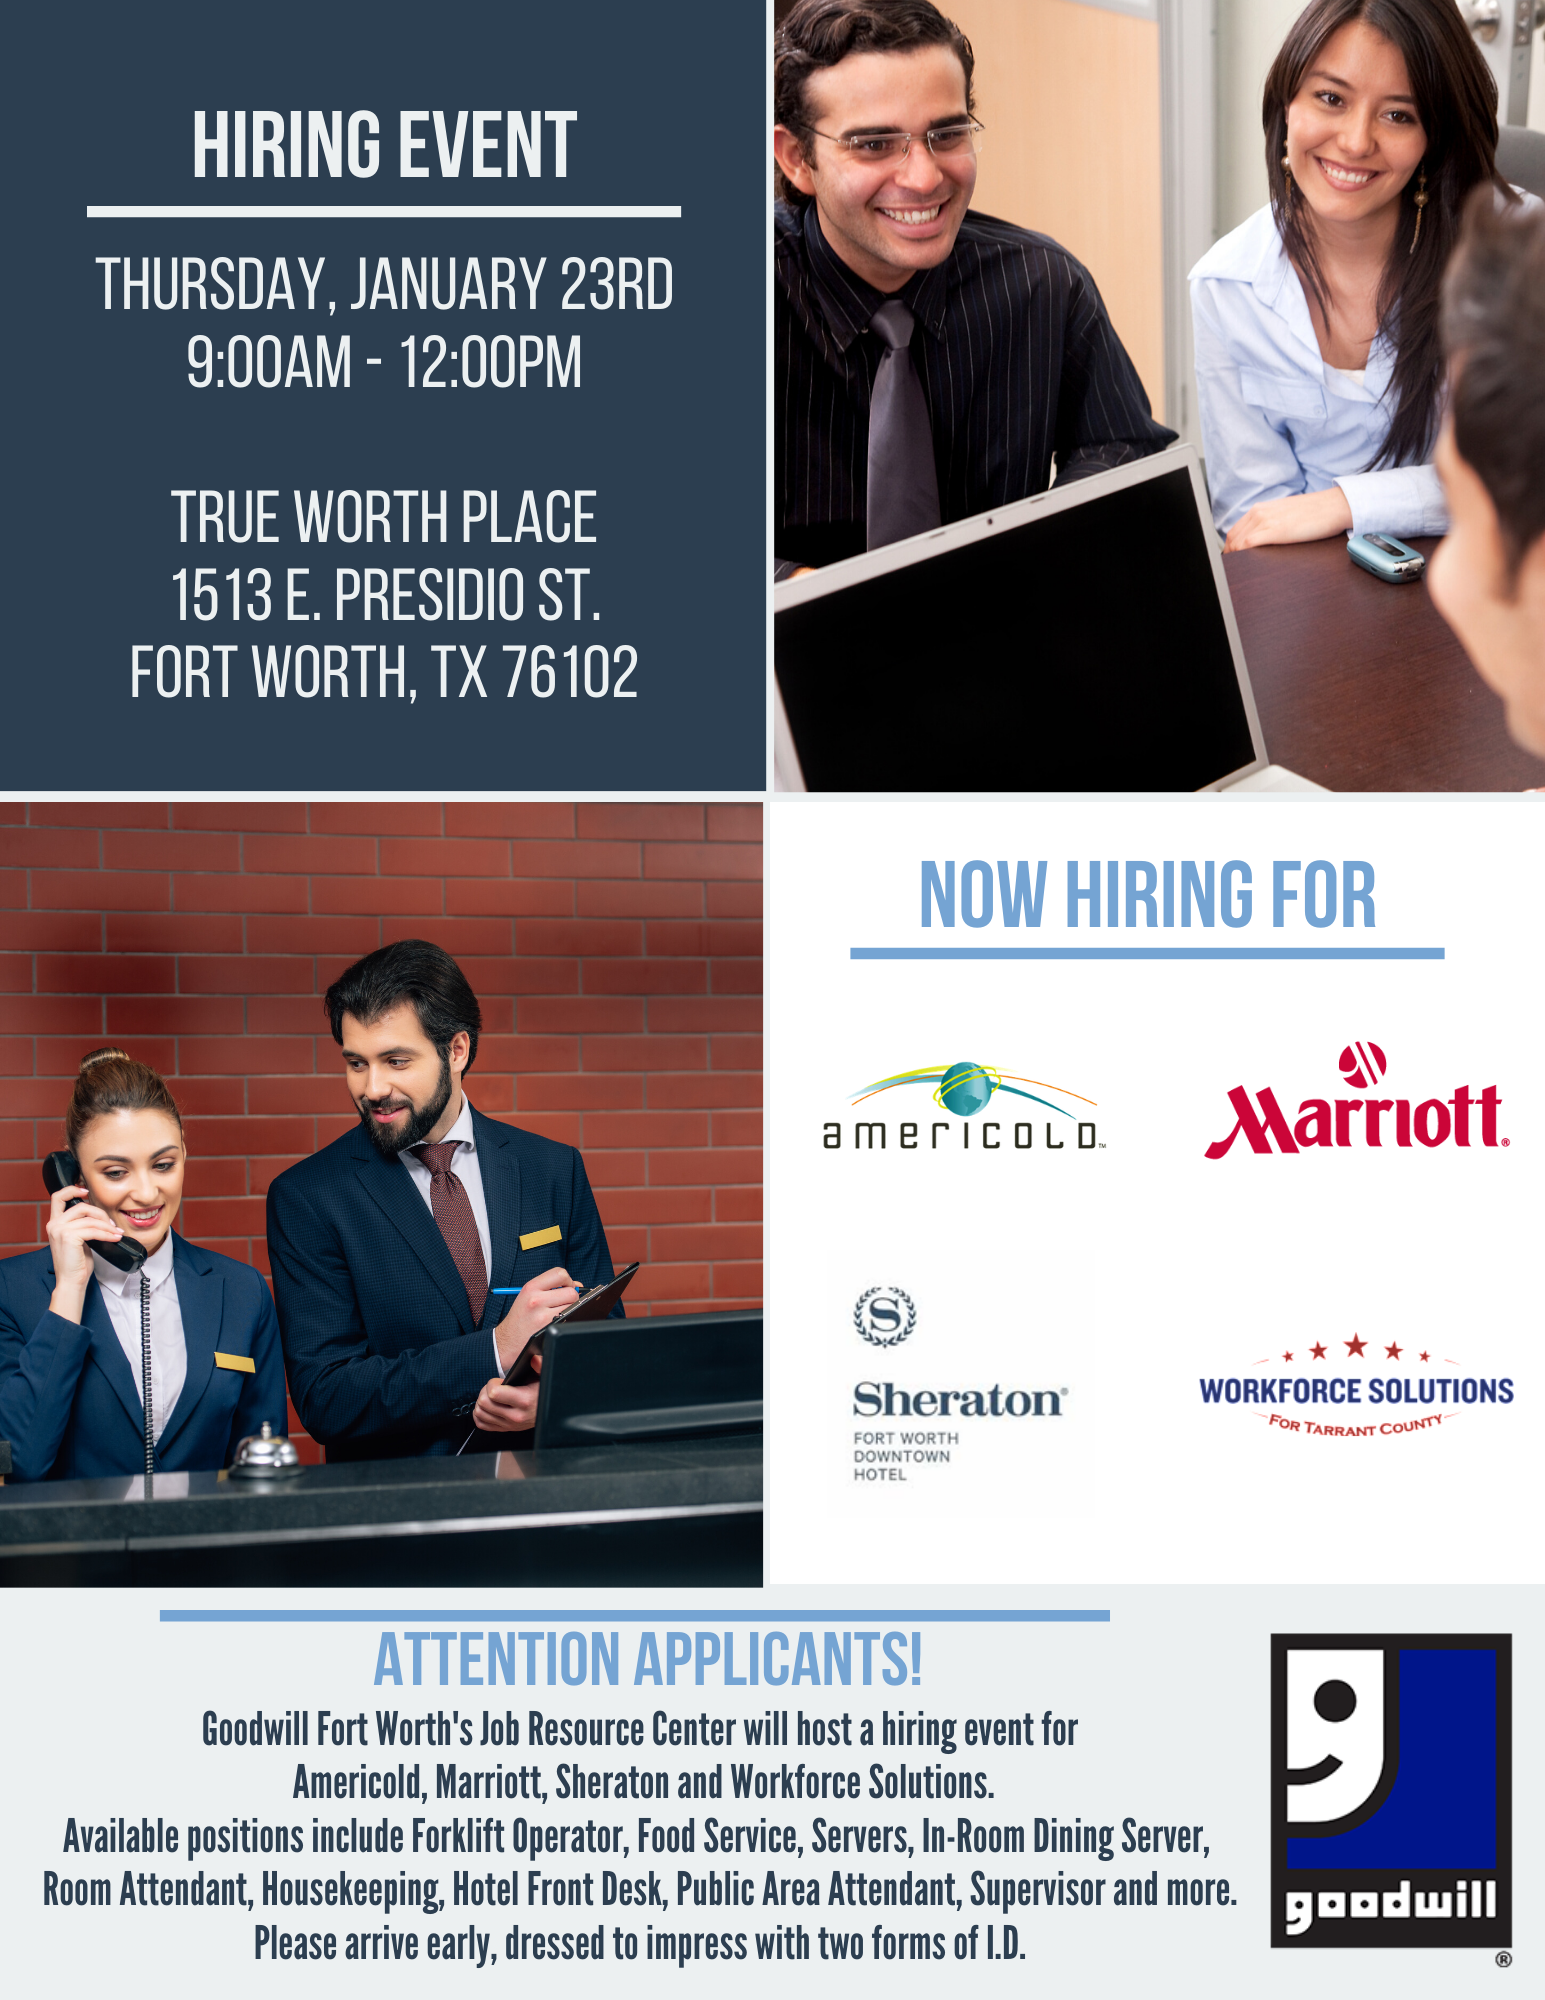 Fort Worth Job Resource Center Hiring Event Goodwill Industries Fort Worth